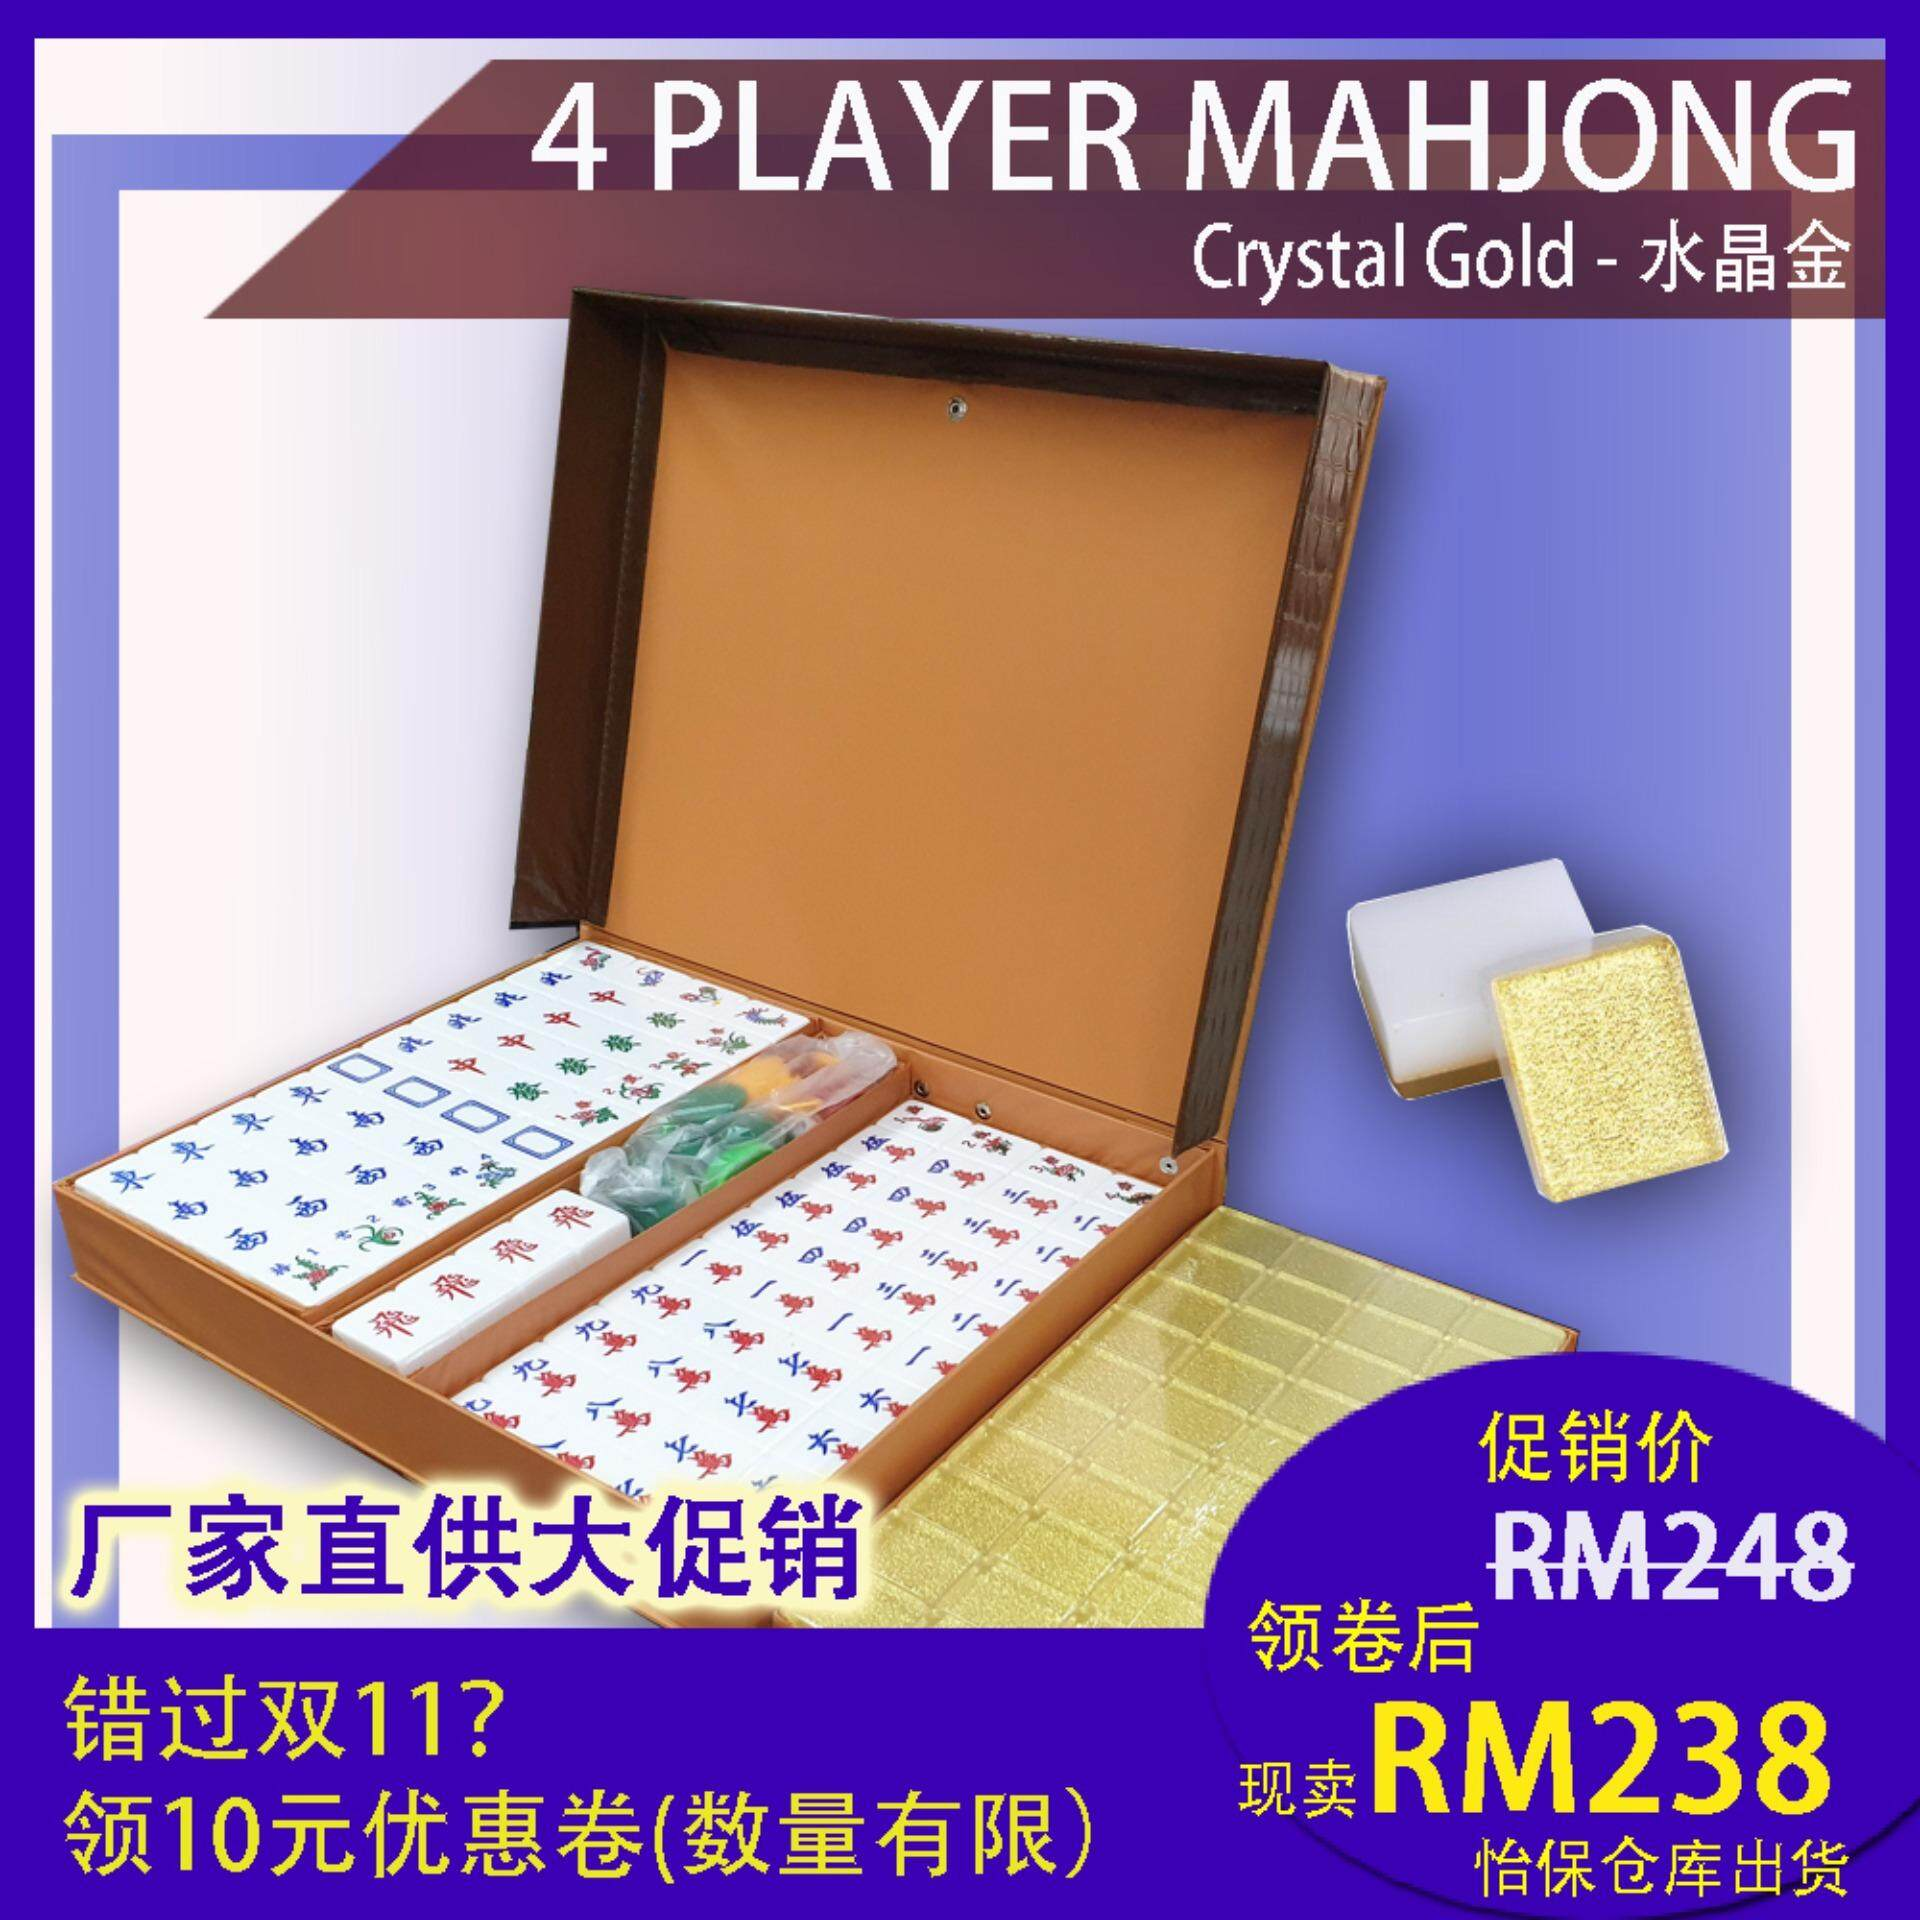 [Ready Stock]BCG MALAYSIA A1 MAHJONG 4PLAYER CRYSTAL GOLD with PVC Case Ship from Malaysia